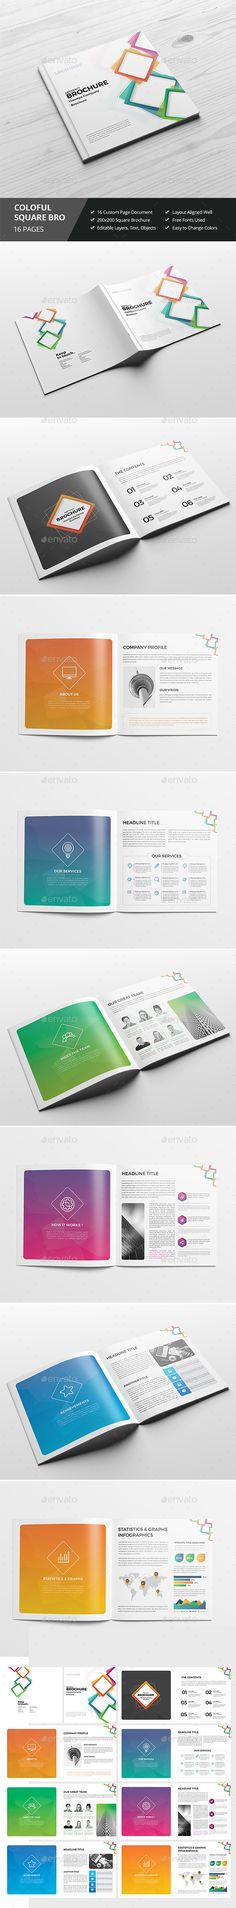 45+ Free Brochure Templates PSD Download Free brochure, Brochure - technology brochure template